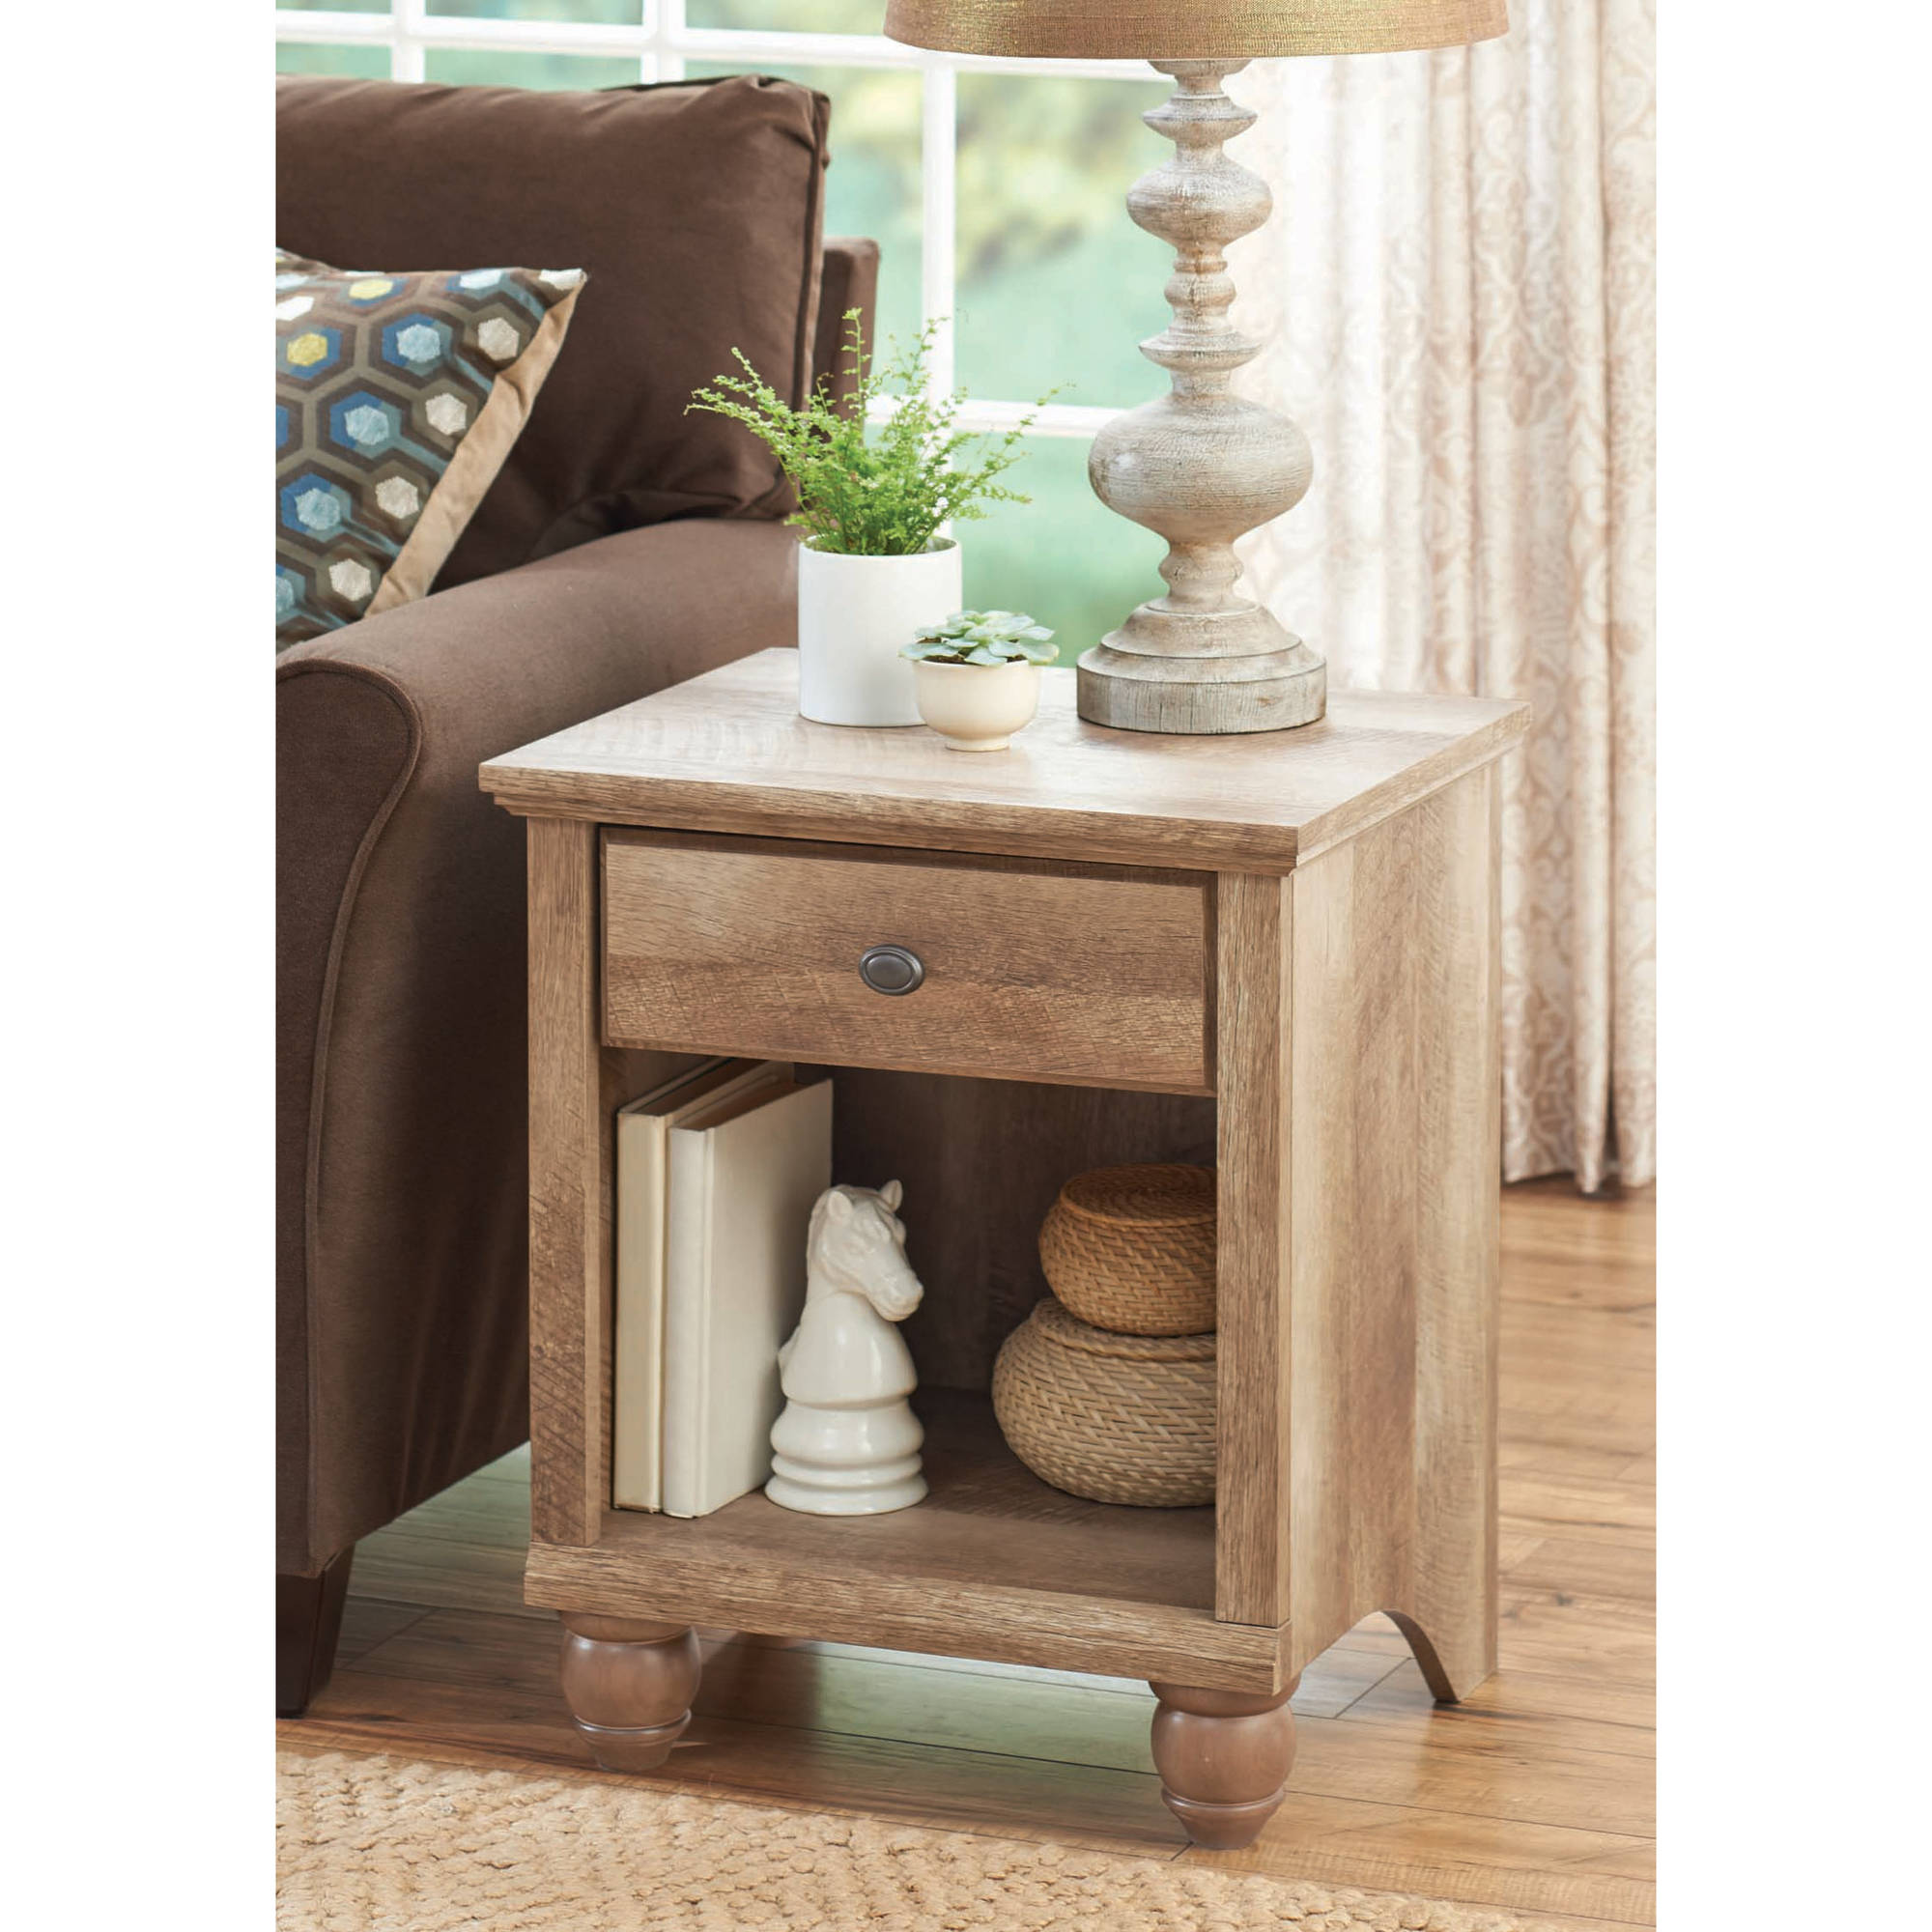 better homes gardens crossmill accent table weathered finish bedroom tables recliner end kitchen with chairs white outdoor shades light pottery barn kids desk leaf plastic side